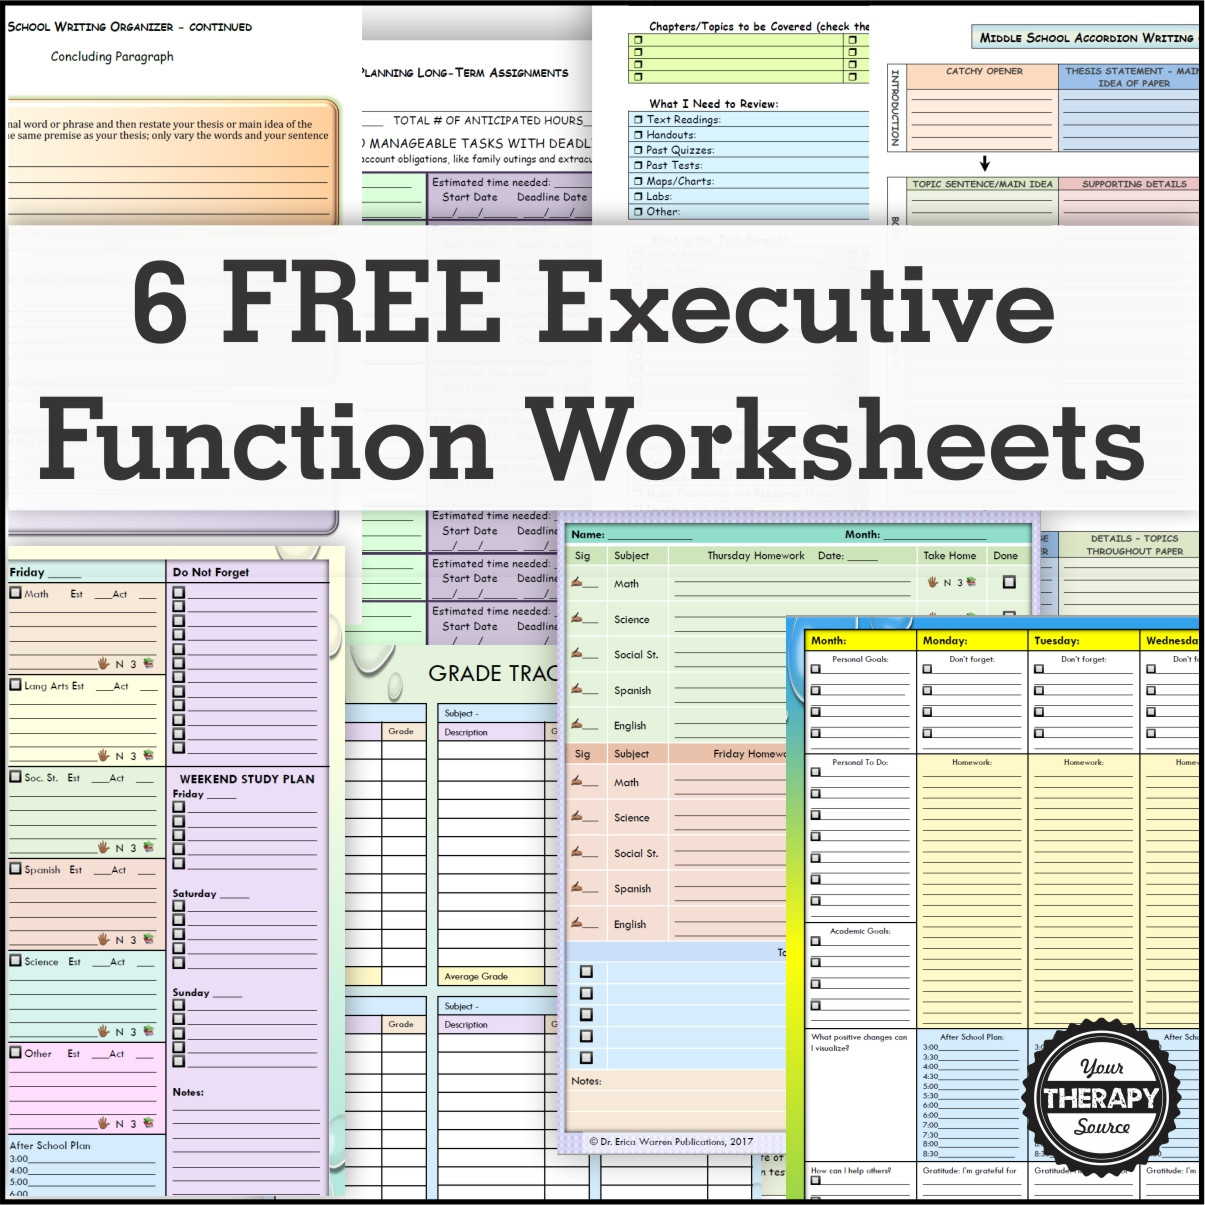 Daily Life Skills Worksheets 6 Free Executive Functioning Activity Worksheets Your